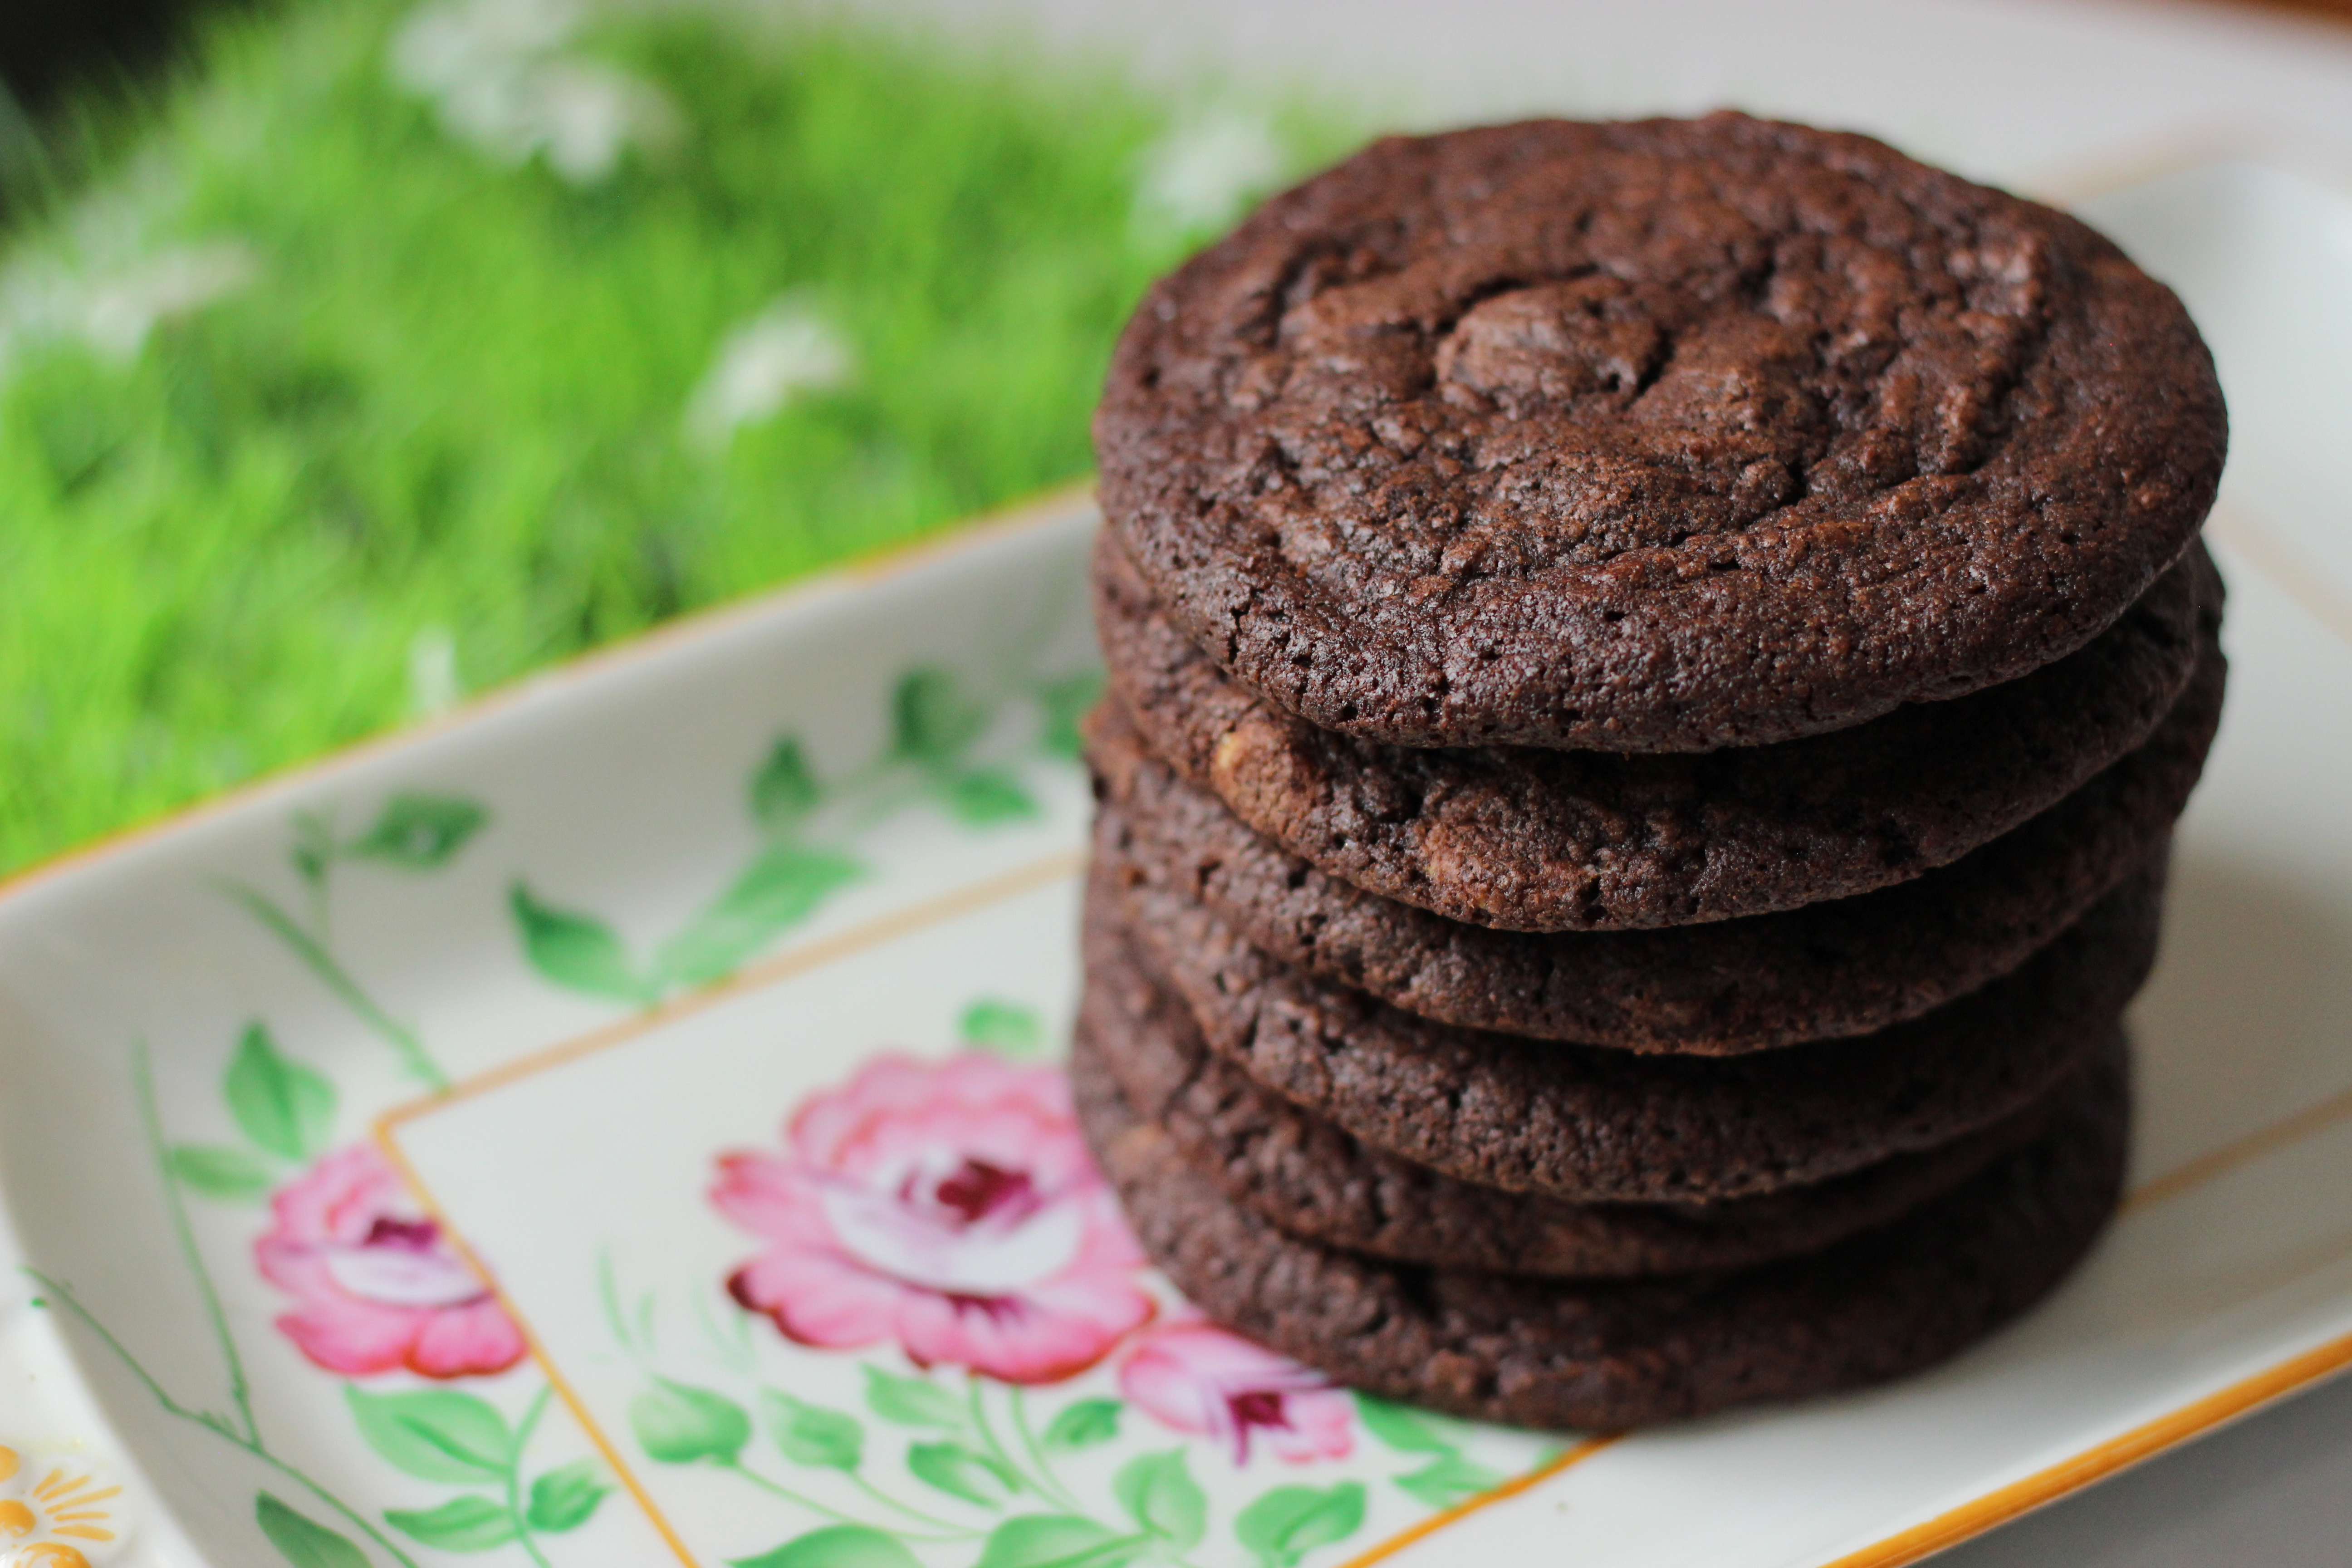 Rocket Bakery's new Triple Chocolate Cookie with Milk, Dark and White Chocolate